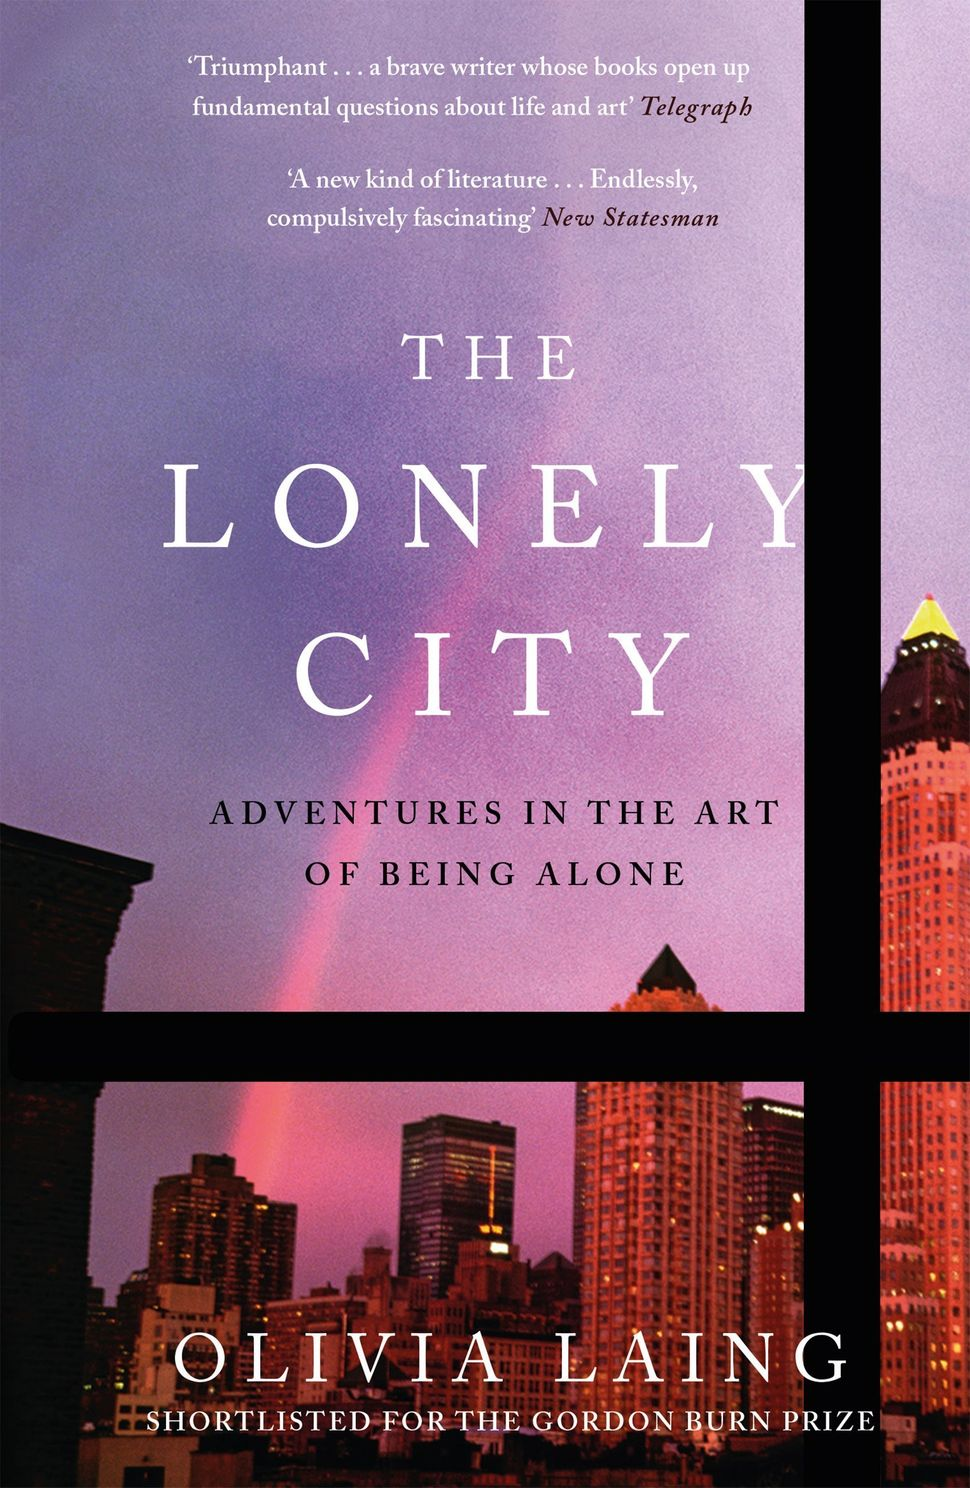 In her book 'The Lonely City', writer Olivia Laing says that 'so much of the pain of loneliness is to do with concealment, with feeling compelled to hide vulnerability'.